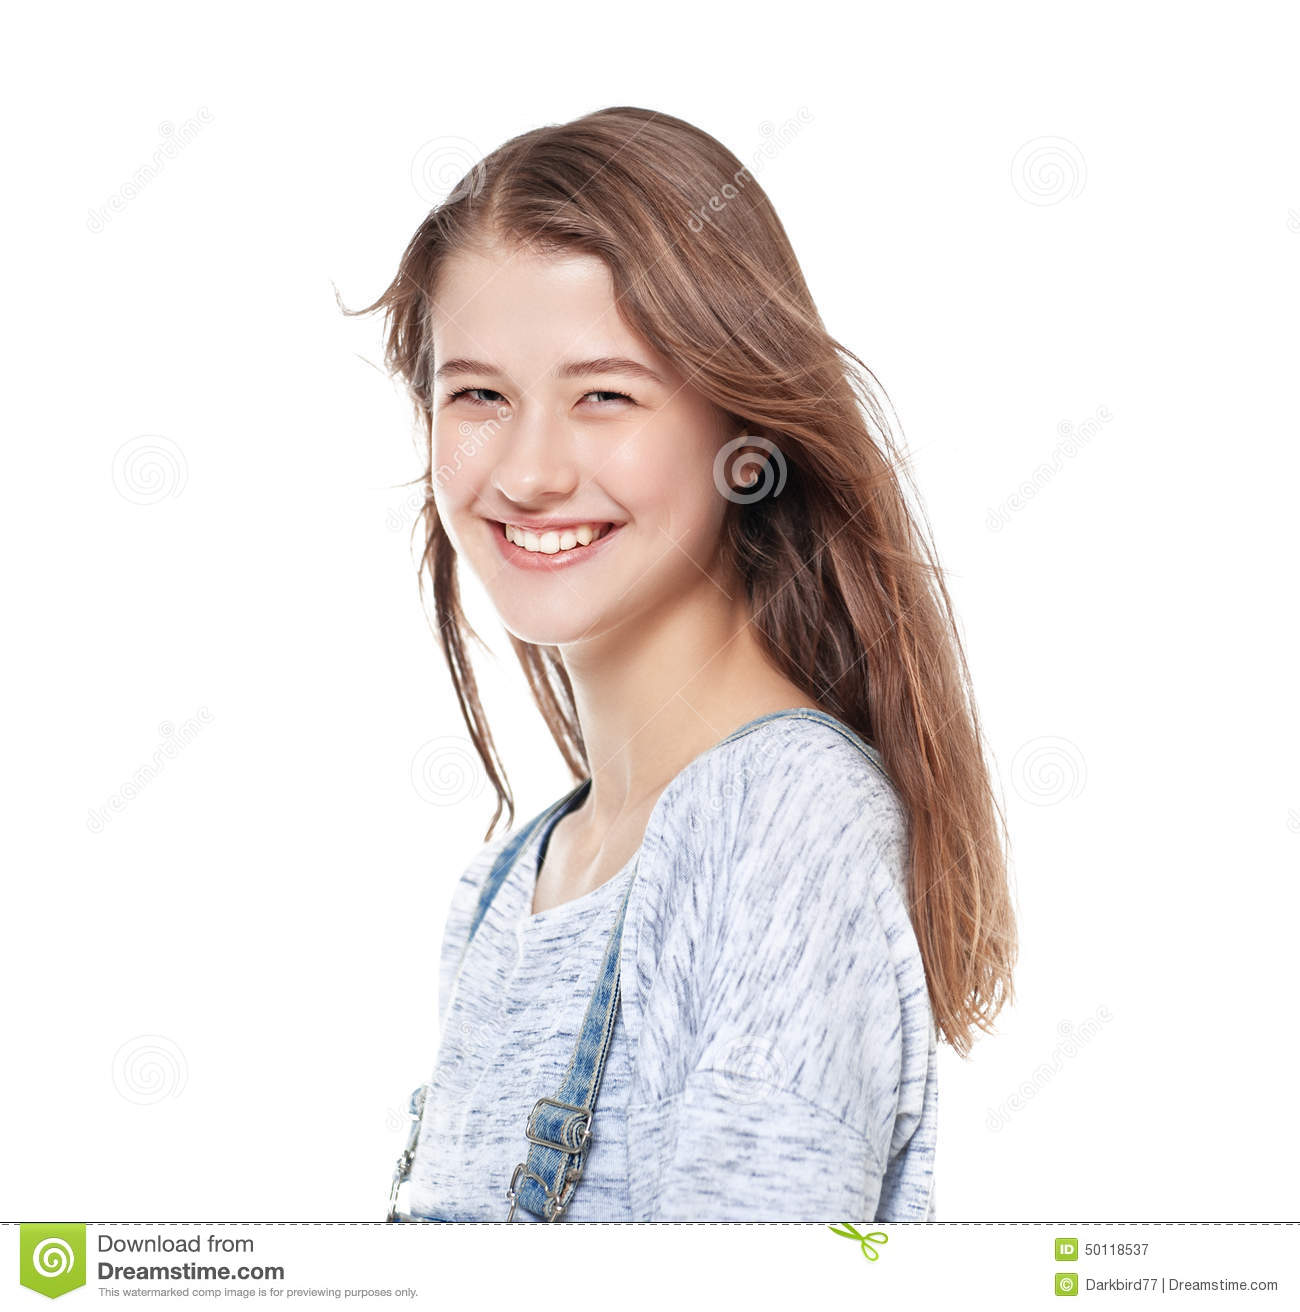 Young Fashion Girl In Jeans Posing Isolated Royalty Free Stock Photography